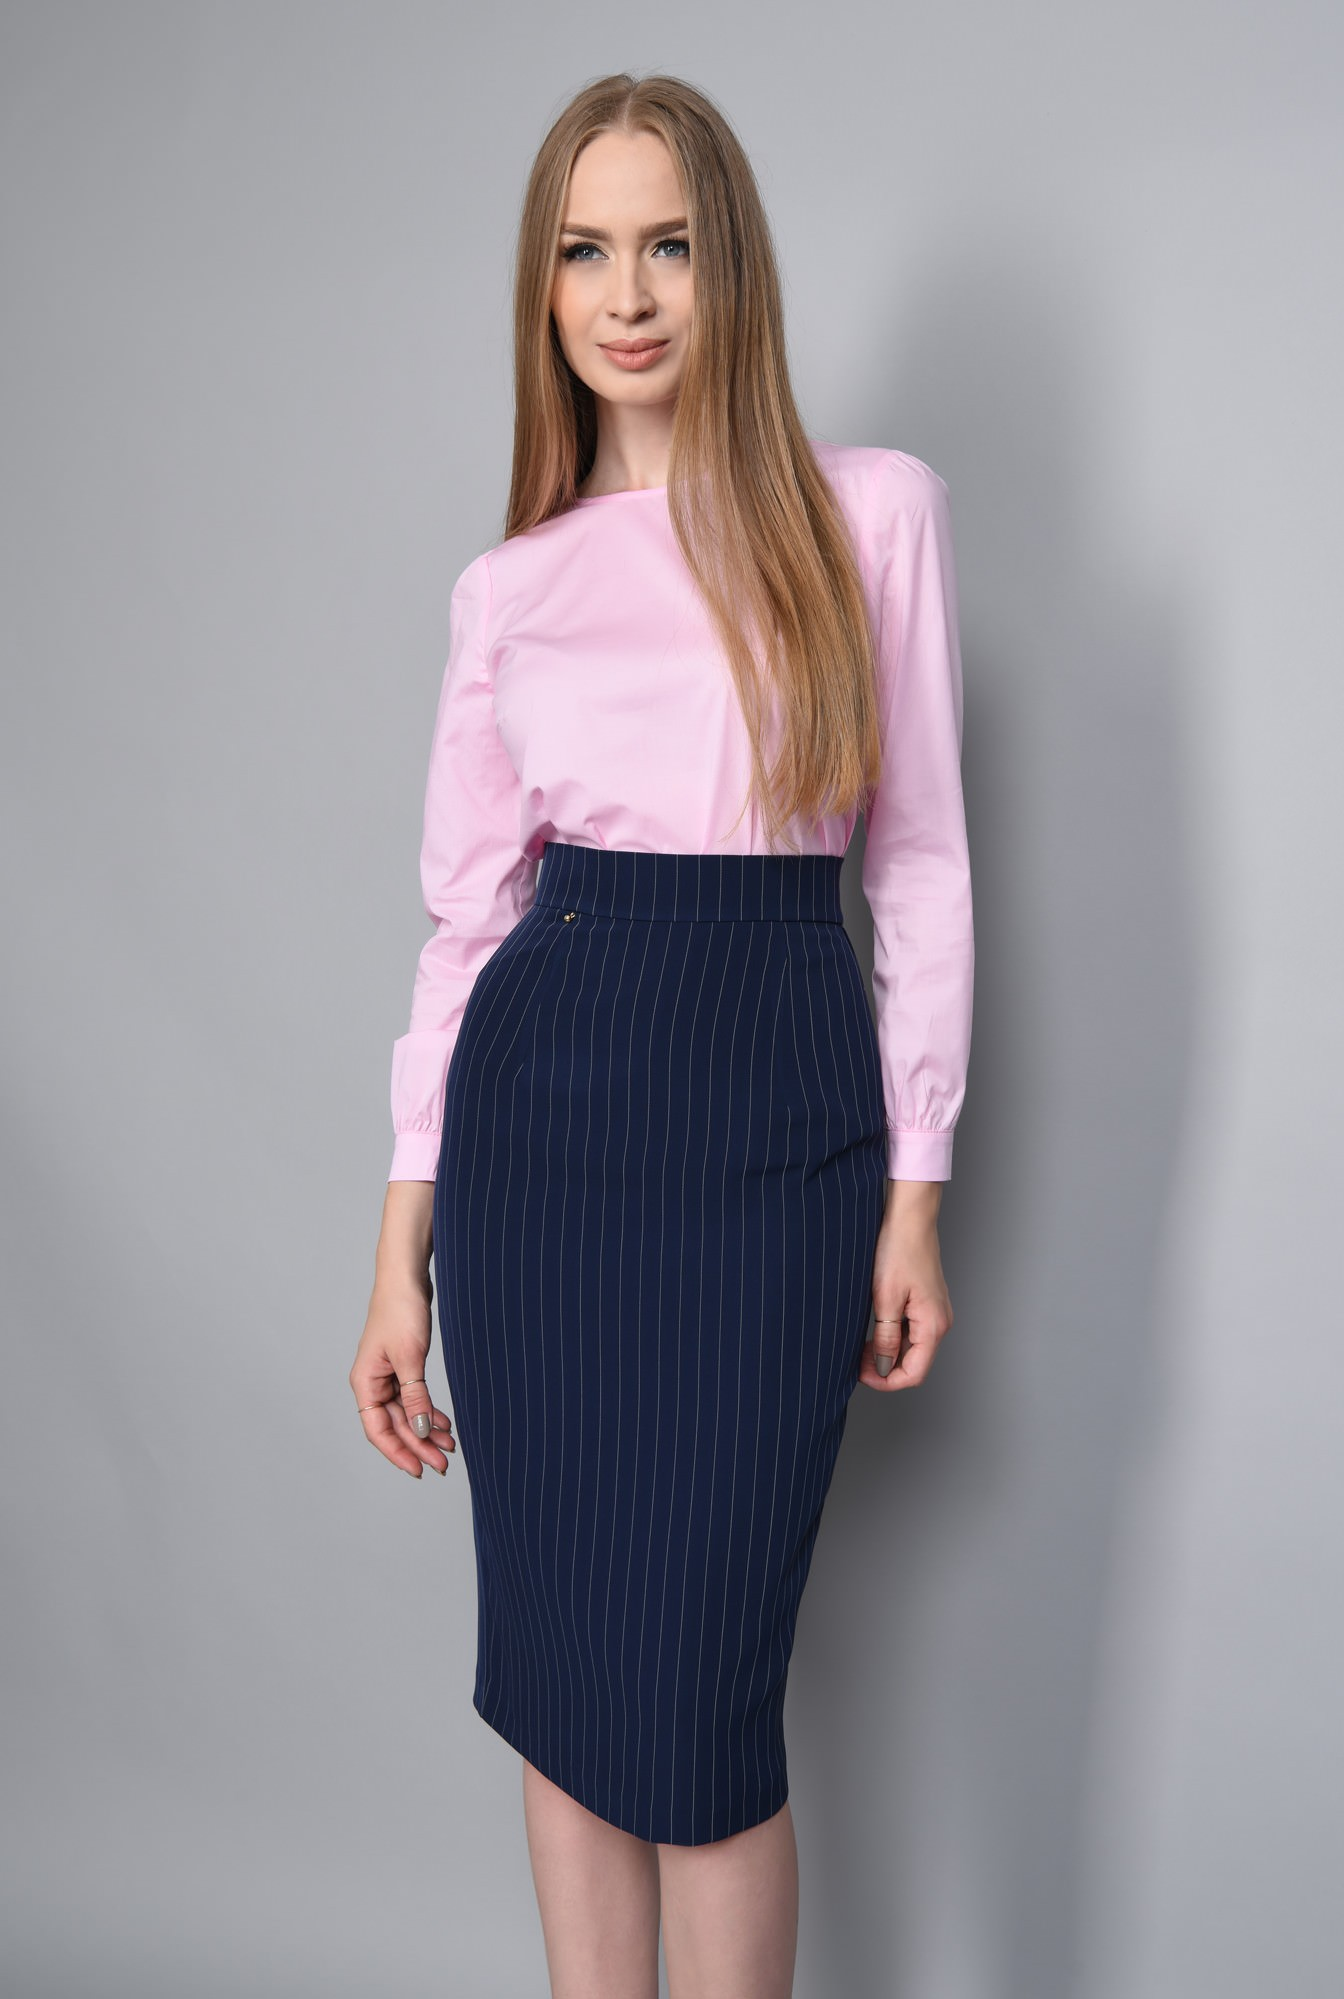 0 - BLUZA OFFICE BL 267-ROZ